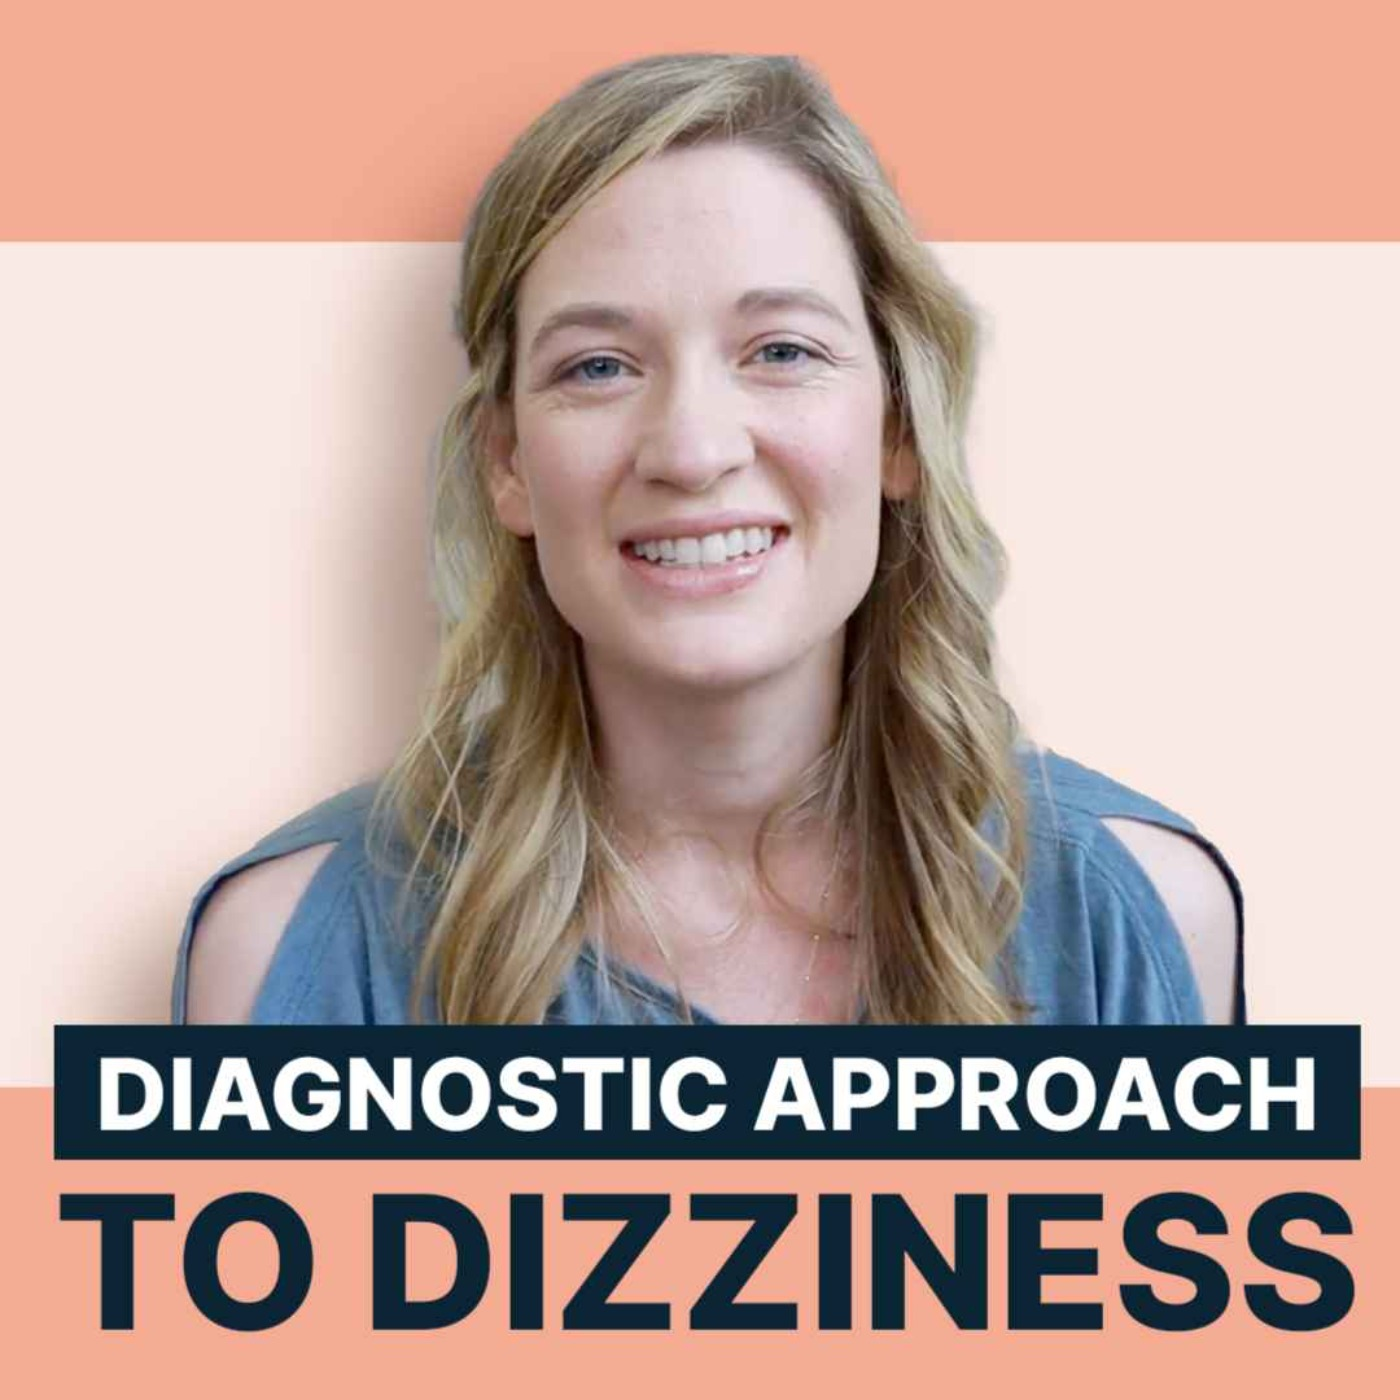 Diagnostic approach to dizziness